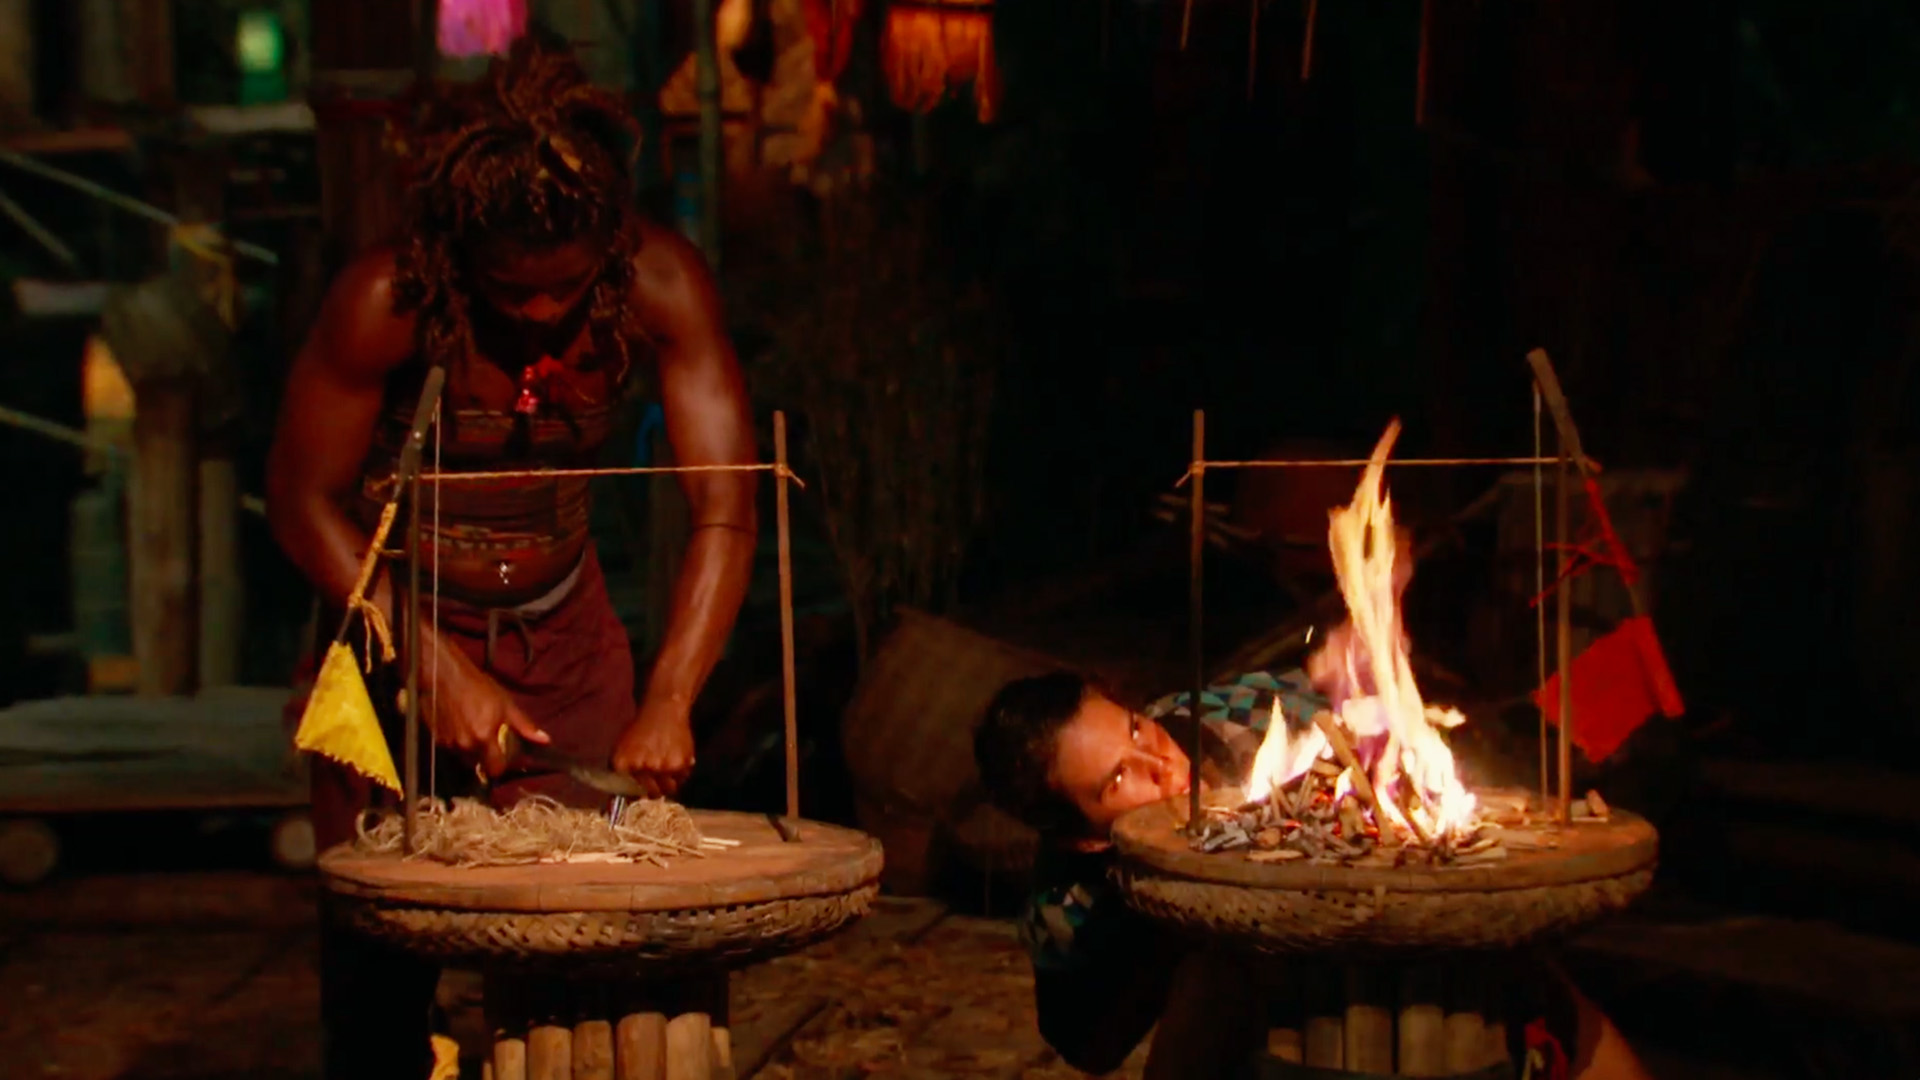 4. A fire-making challenge determines the Final 3.